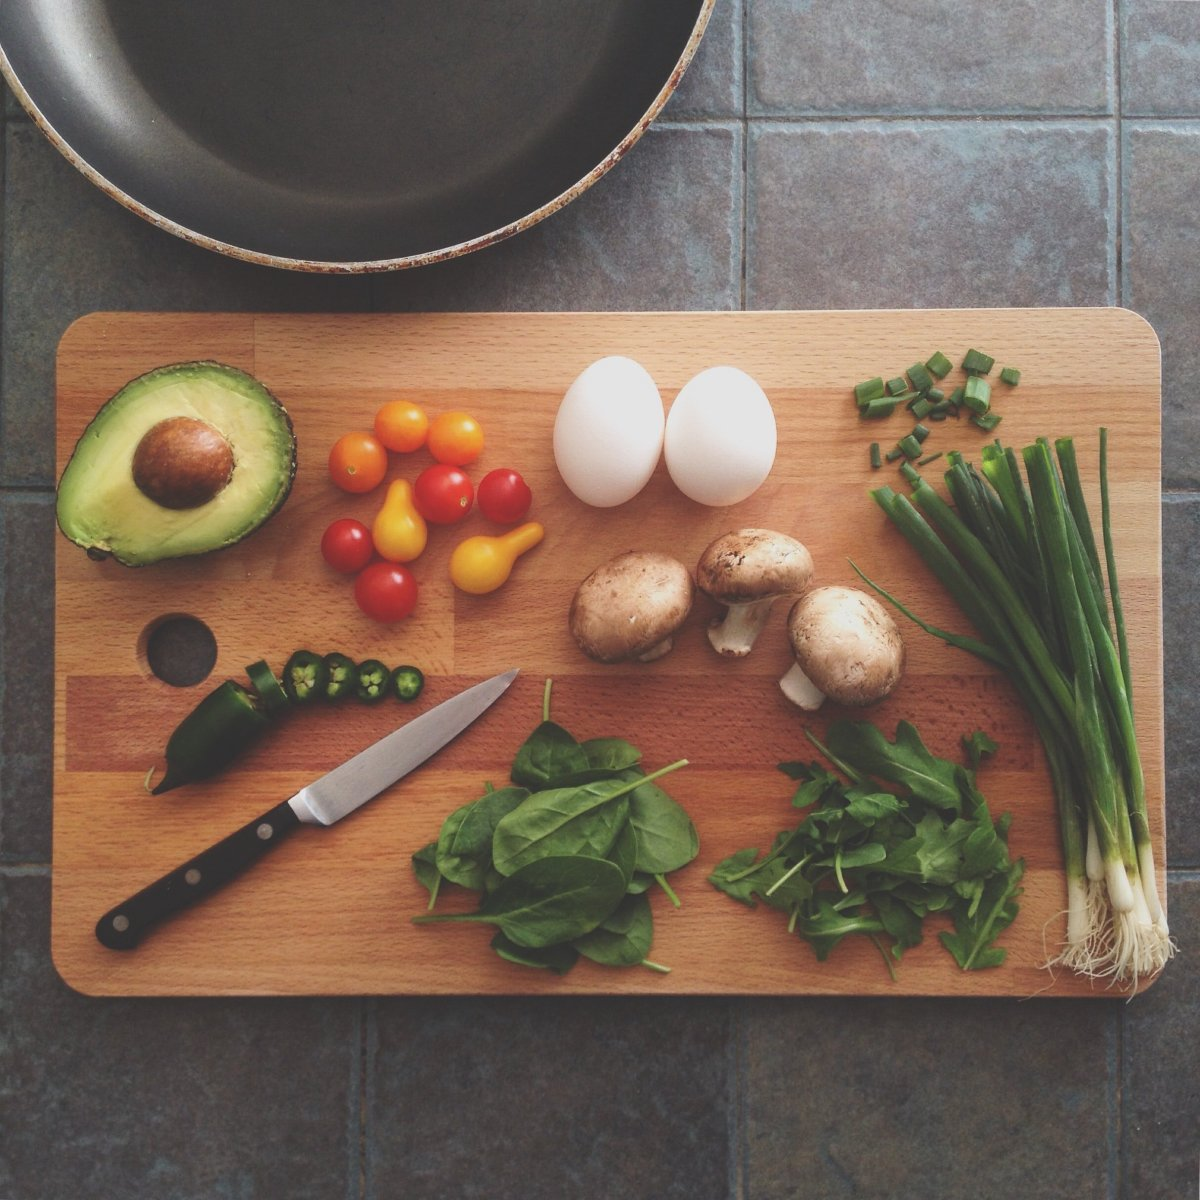 Kitchen Witchery: Ways to Be Mindful While Cooking